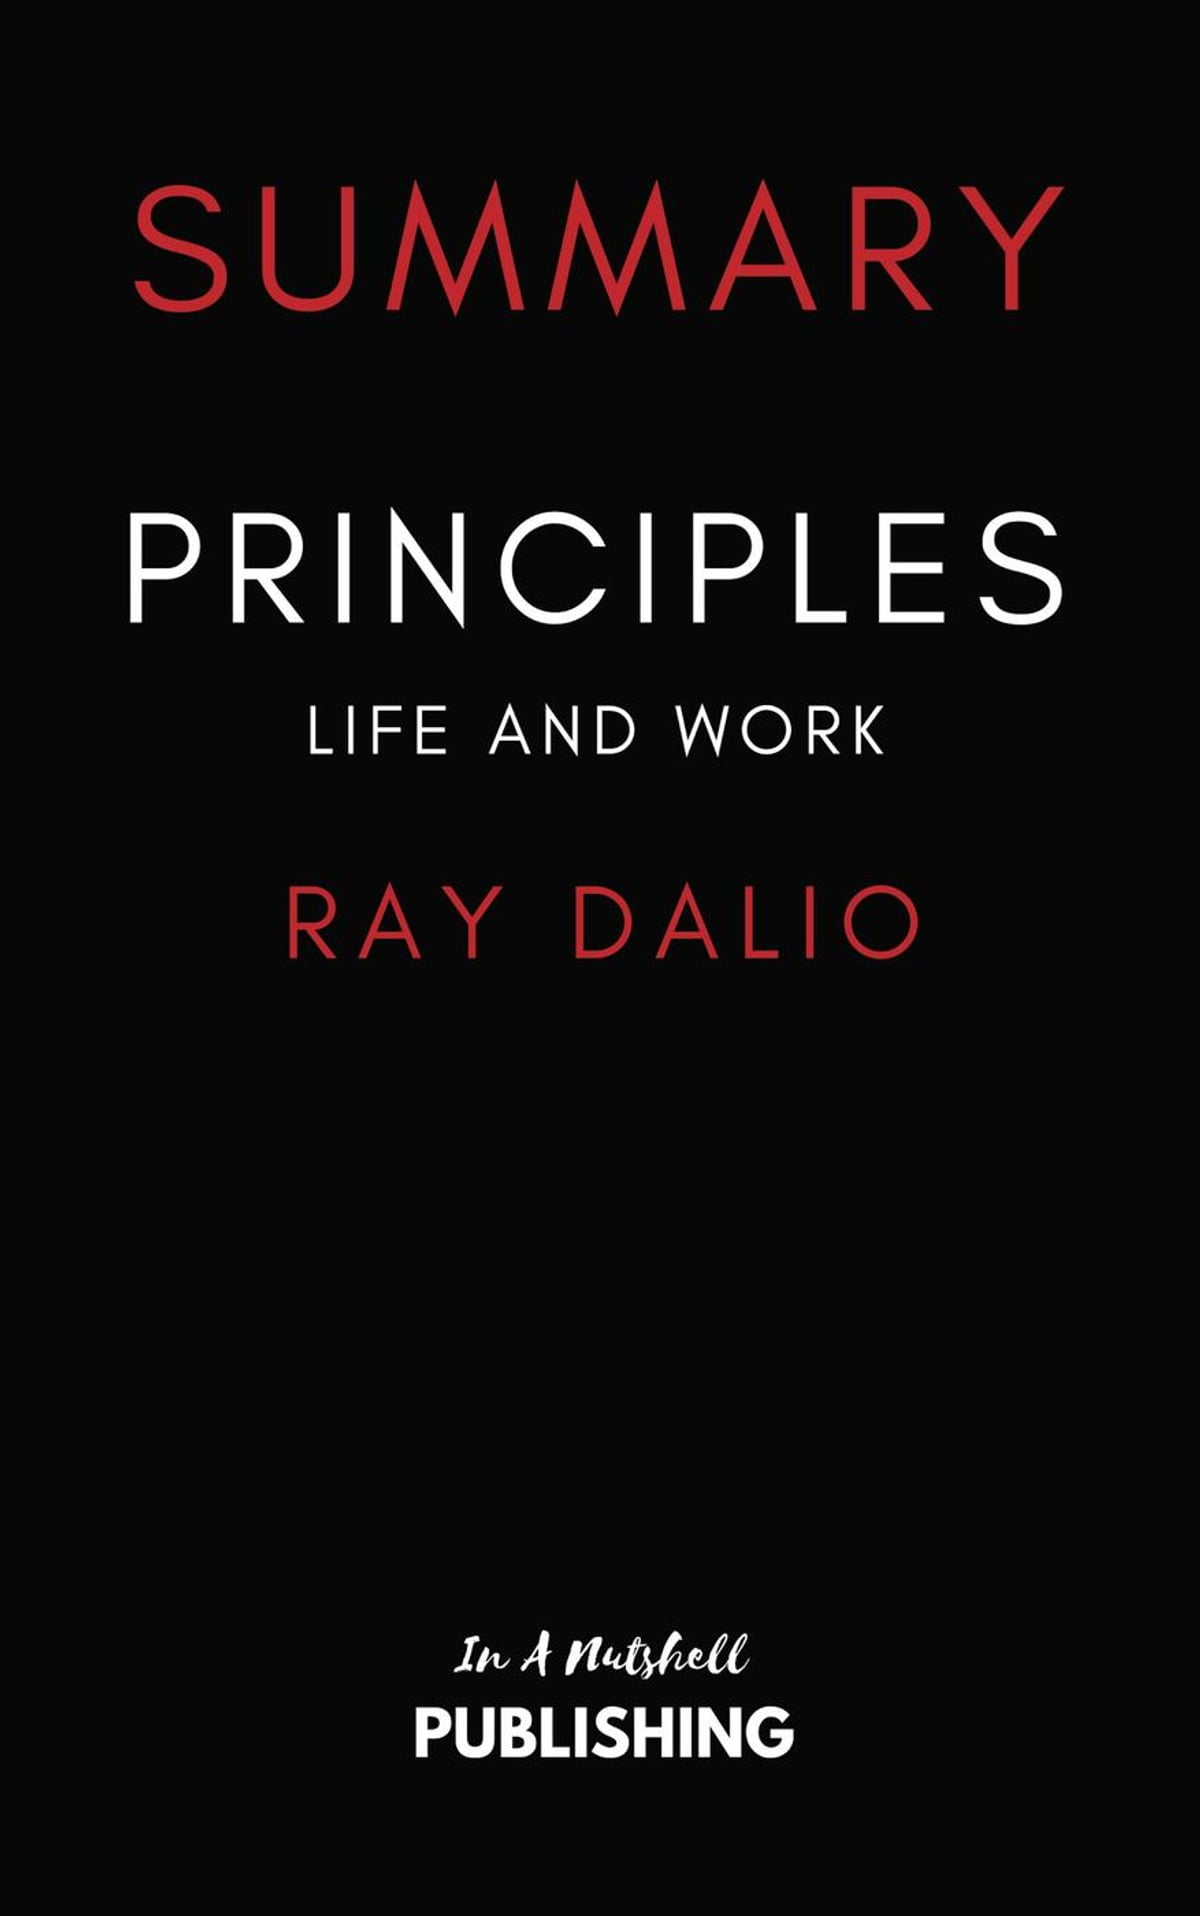 Summary of Principles: Life and Work by Ray Dalio eBook by In A Nutshell  Publishing - 9781386672661 | Rakuten Kobo Greece